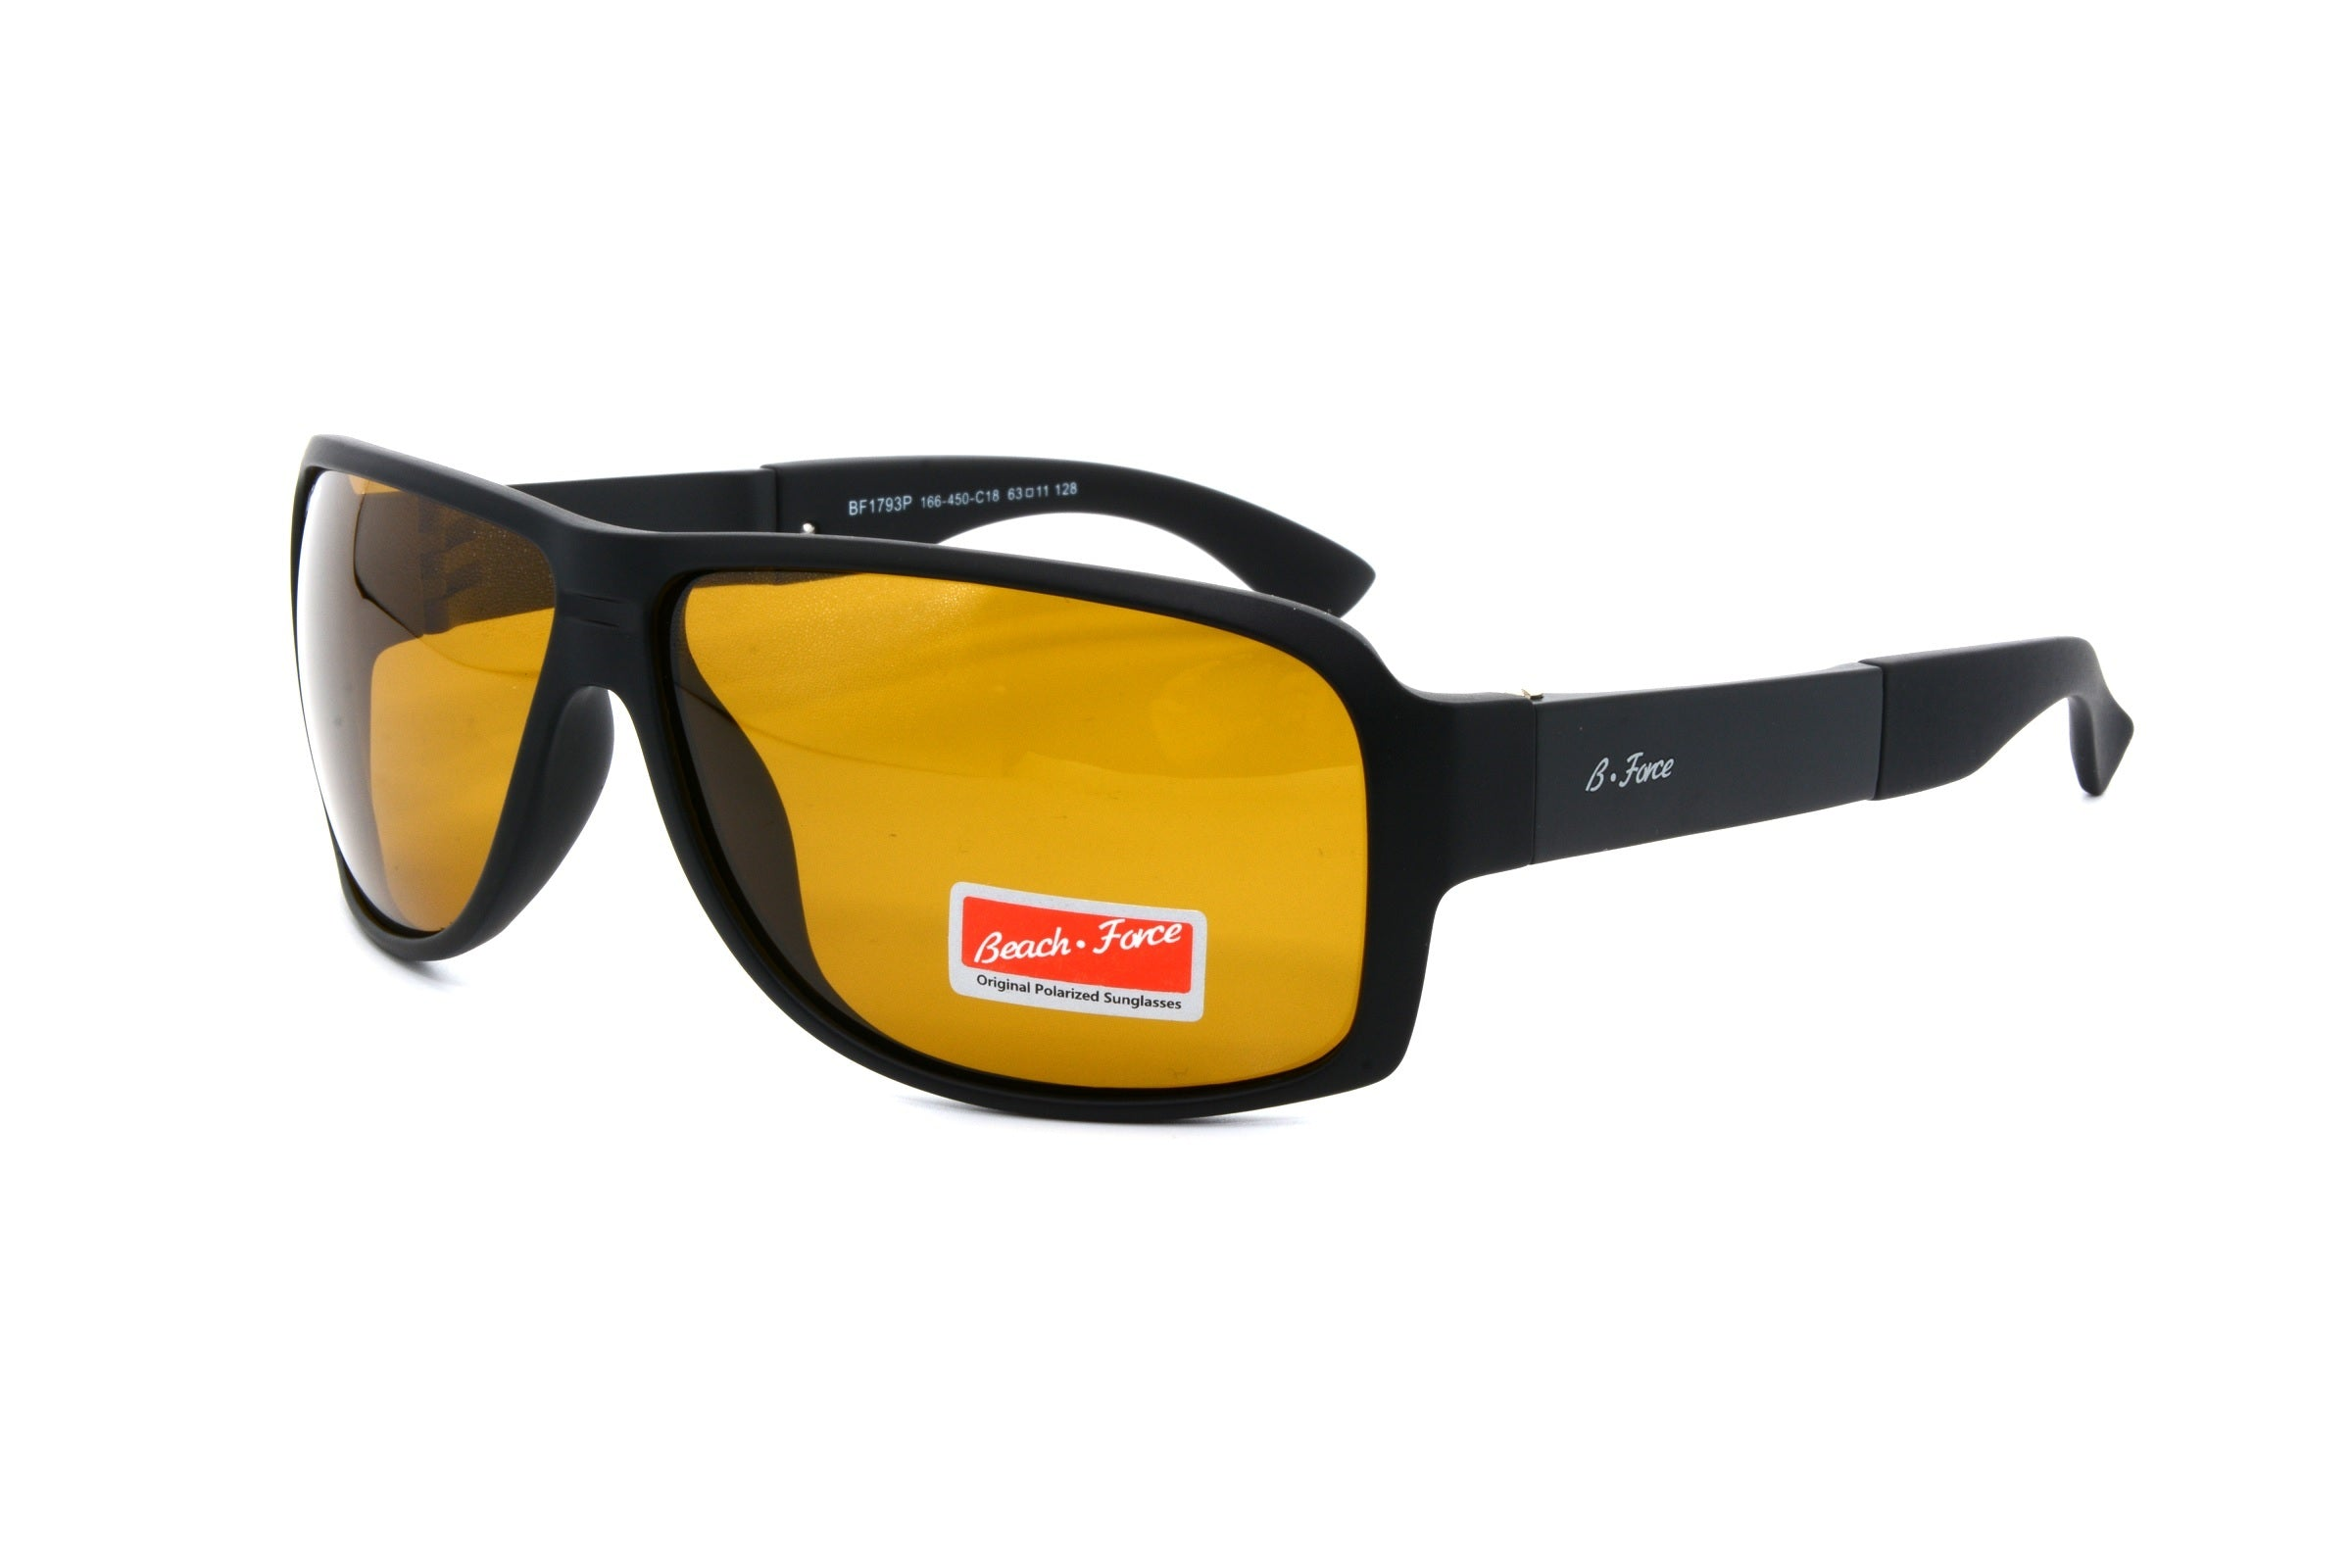 Beach Force sunglasses 1793P 166-450-C18